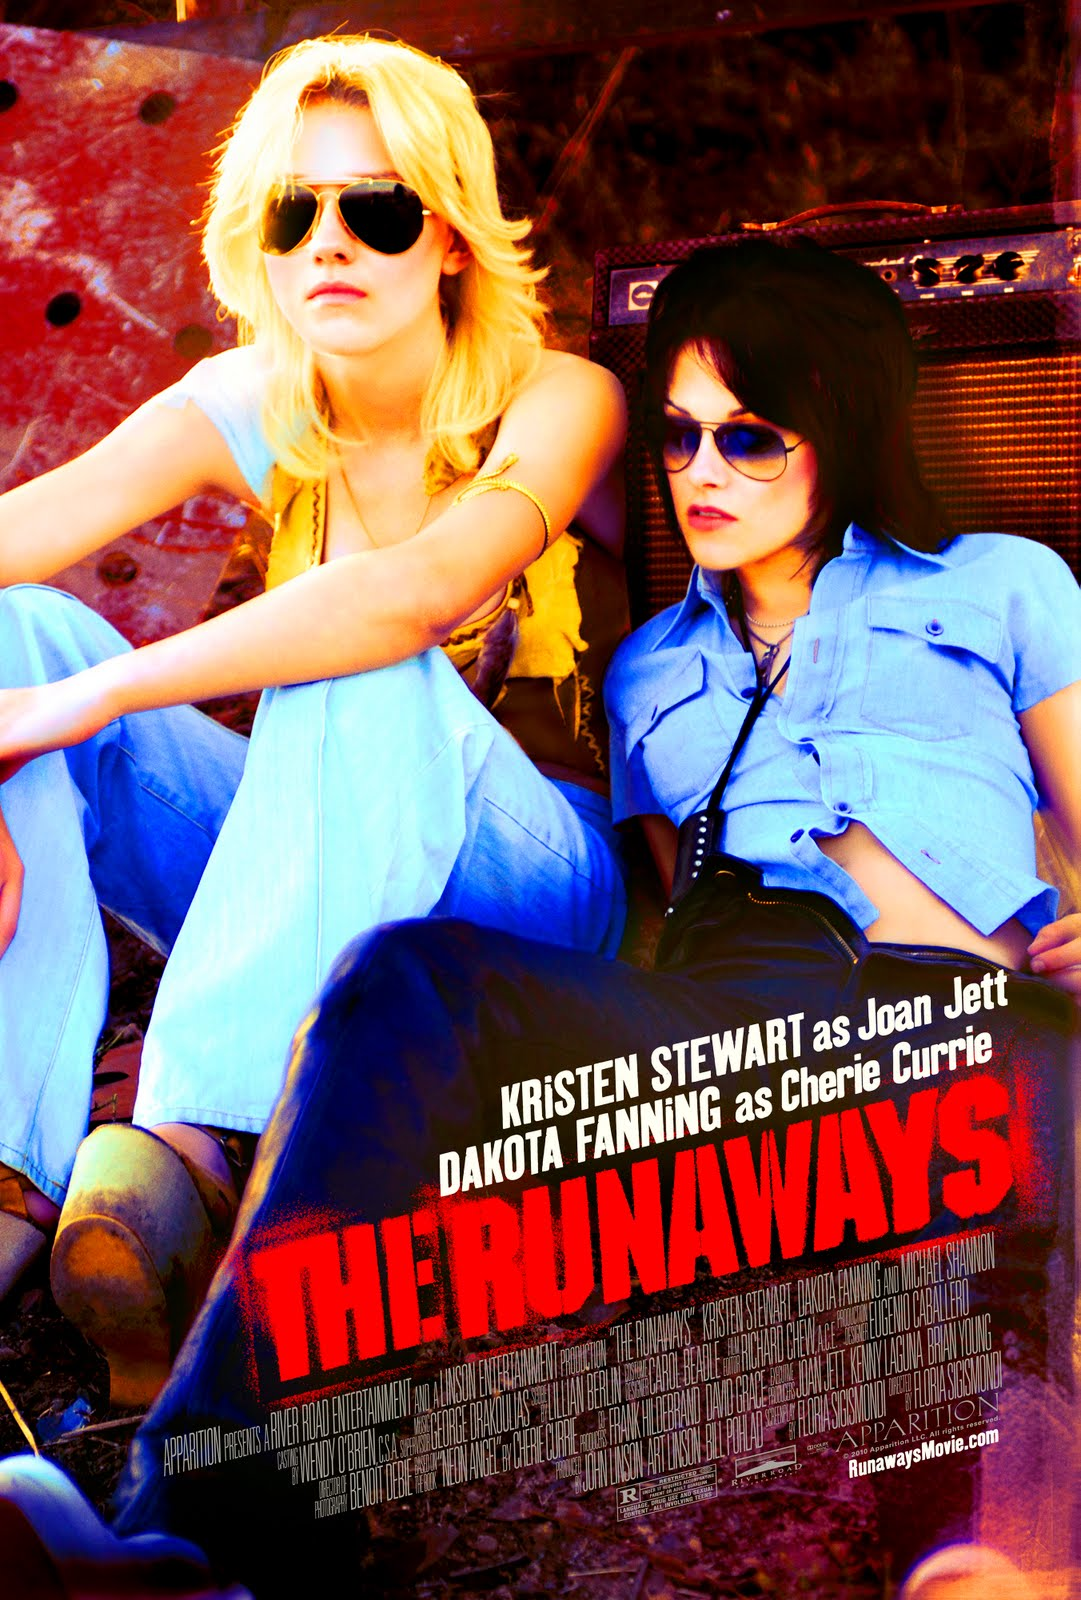 http://2.bp.blogspot.com/_iMHXEljpe8s/S_64GuFzBEI/AAAAAAAAVV4/_5ZTSx2ra4g/s1600/the-runaways-2010-movie-poster.jpg